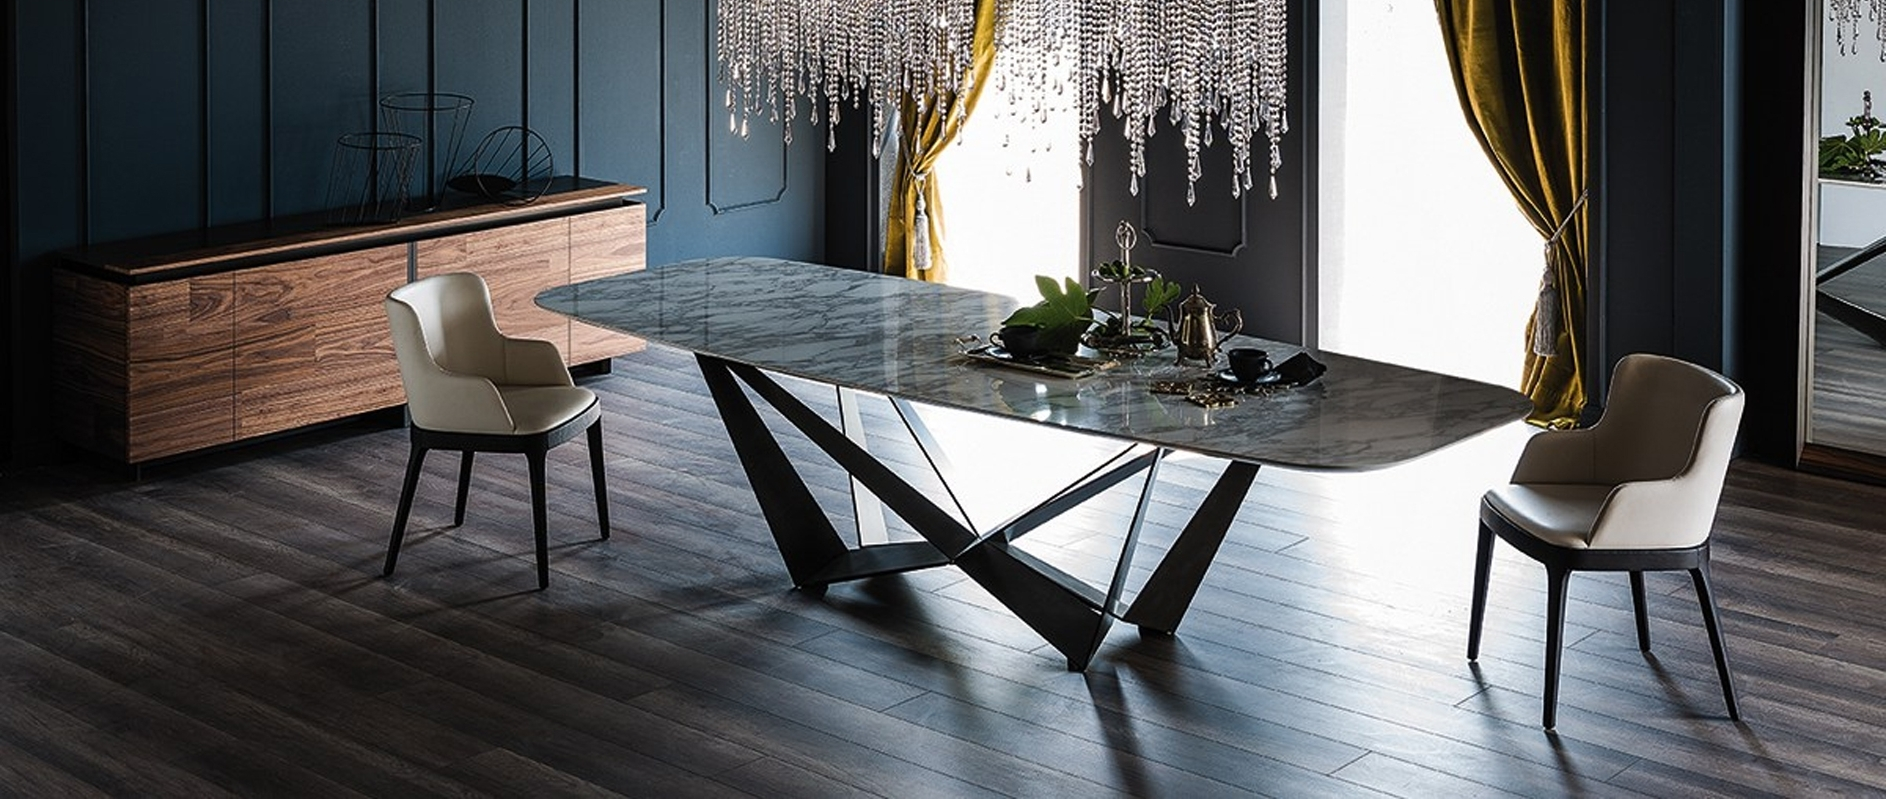 Modern Dining Room Furniture Pertaining To Widely Used Modern Dining Room Furniture – Modern Dining Tables, Dining Chairs (View 3 of 25)